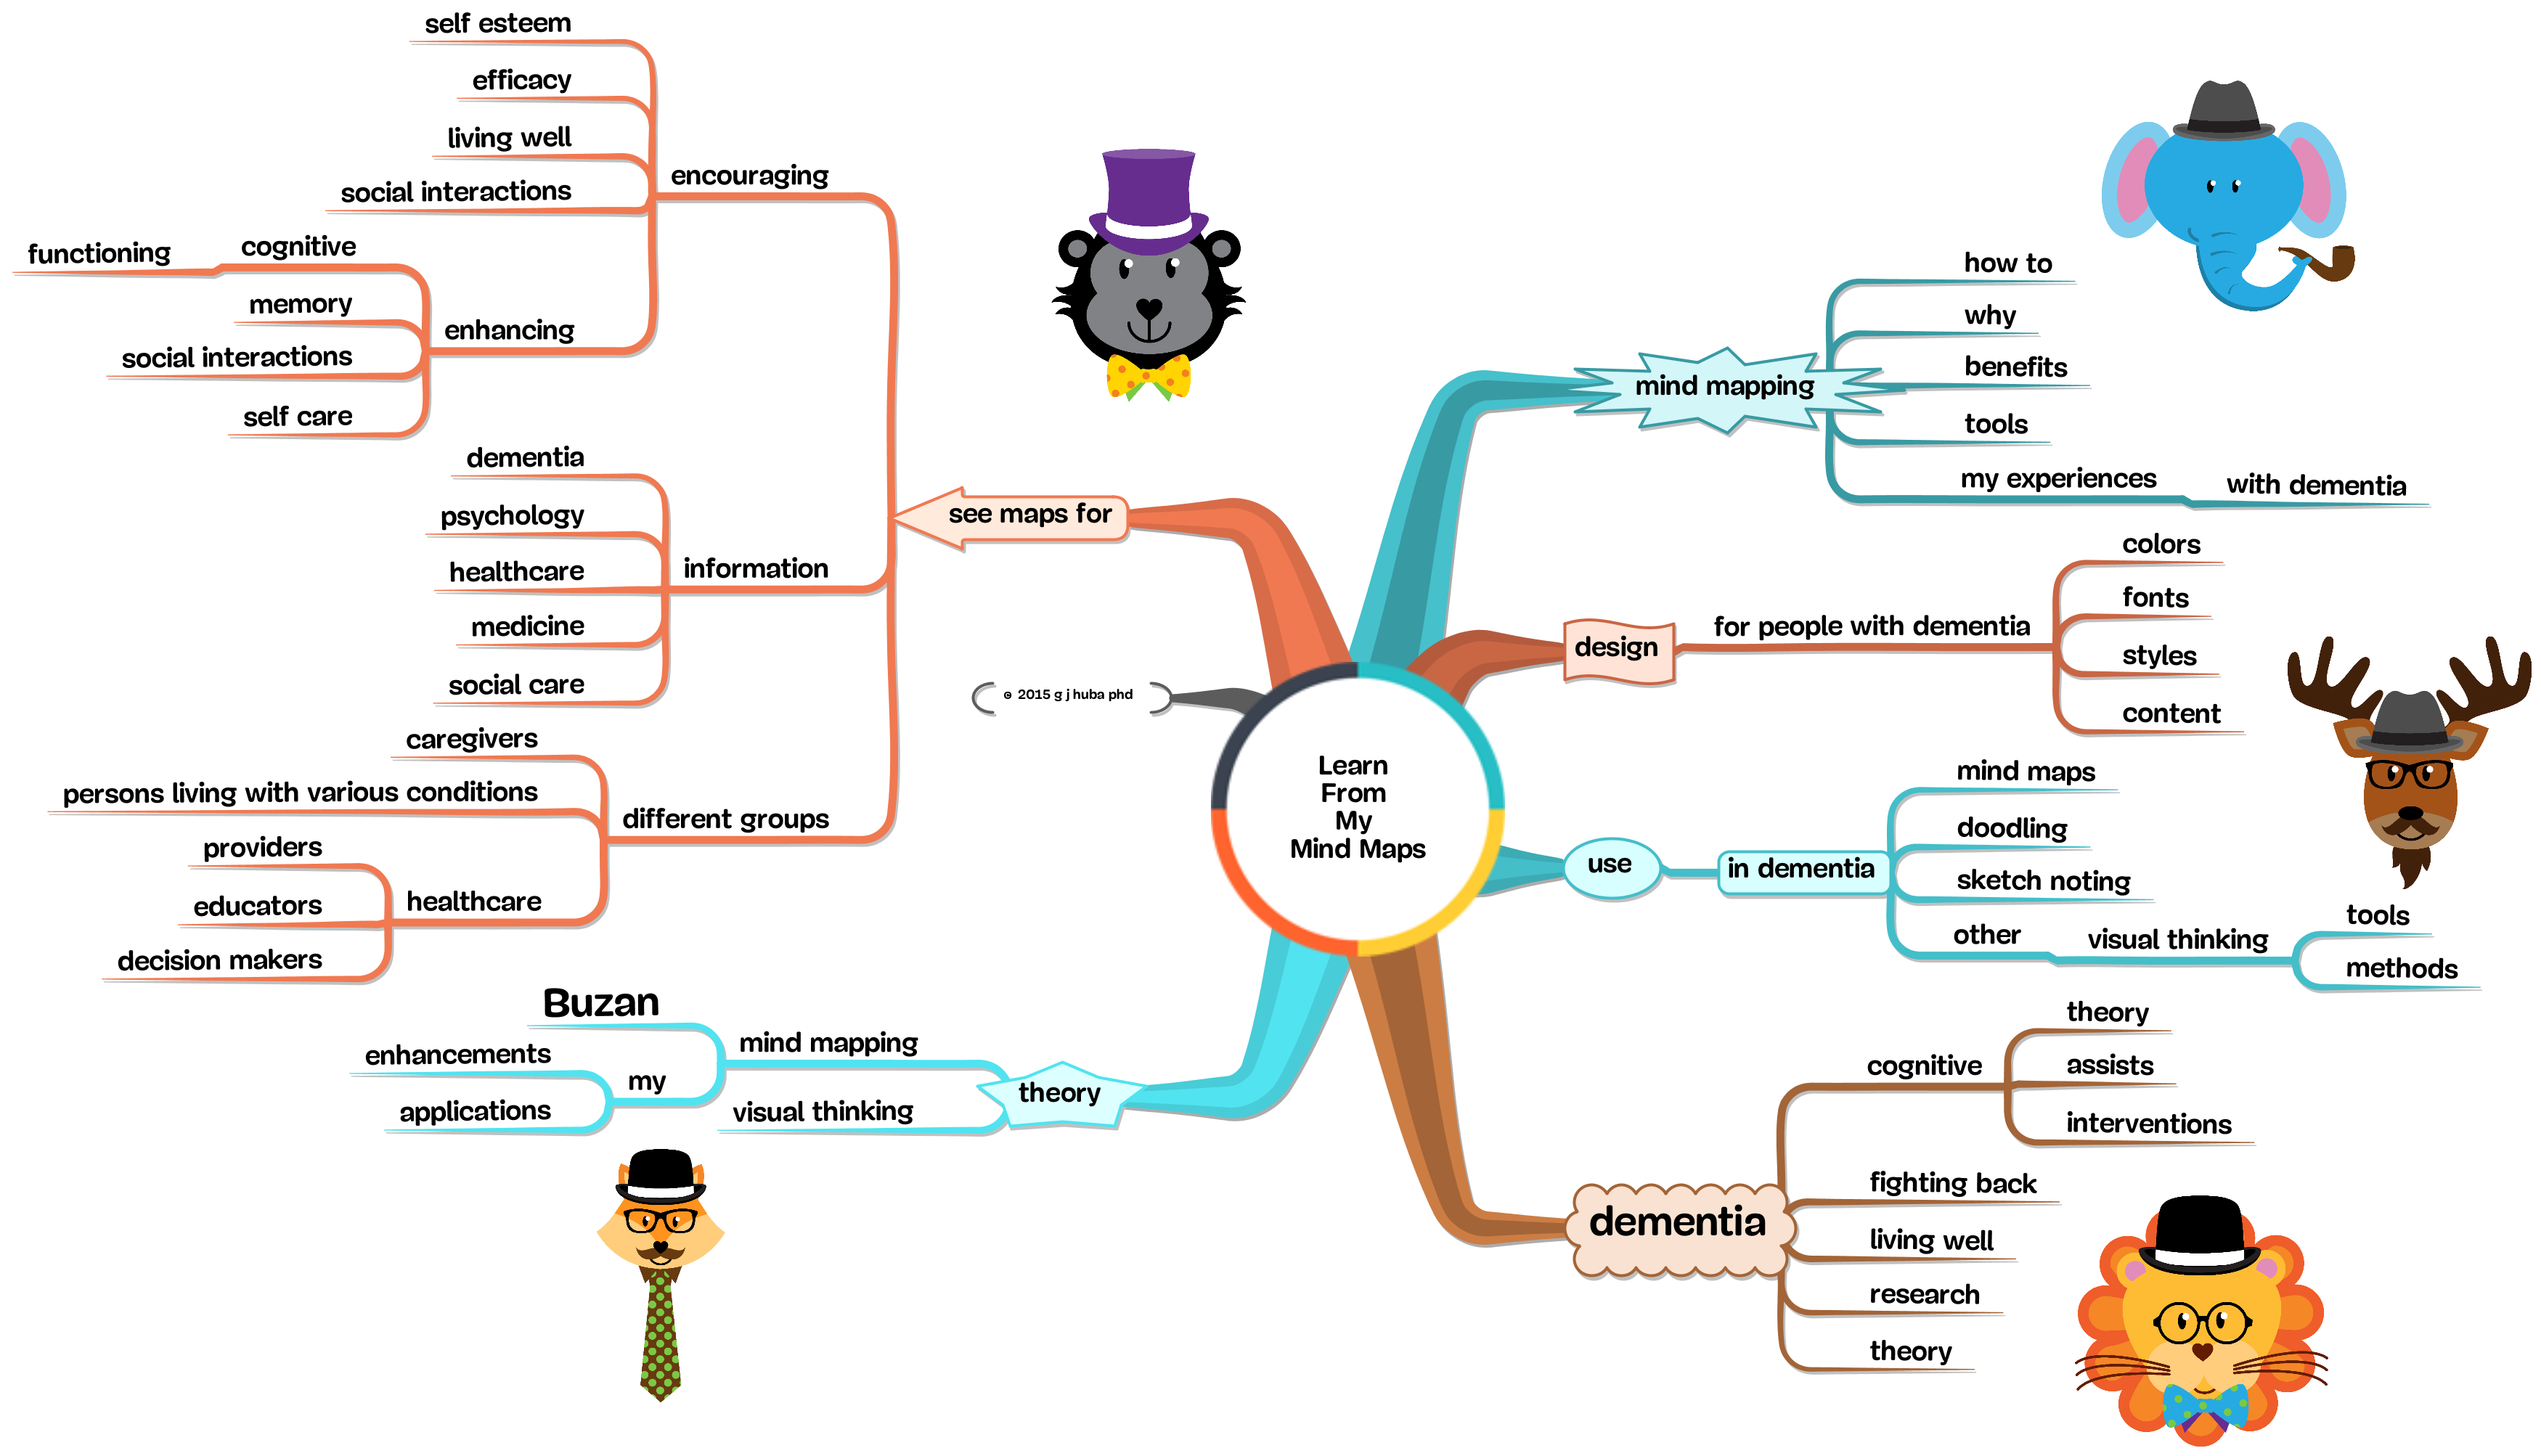 Learn  From  My  Mind Maps